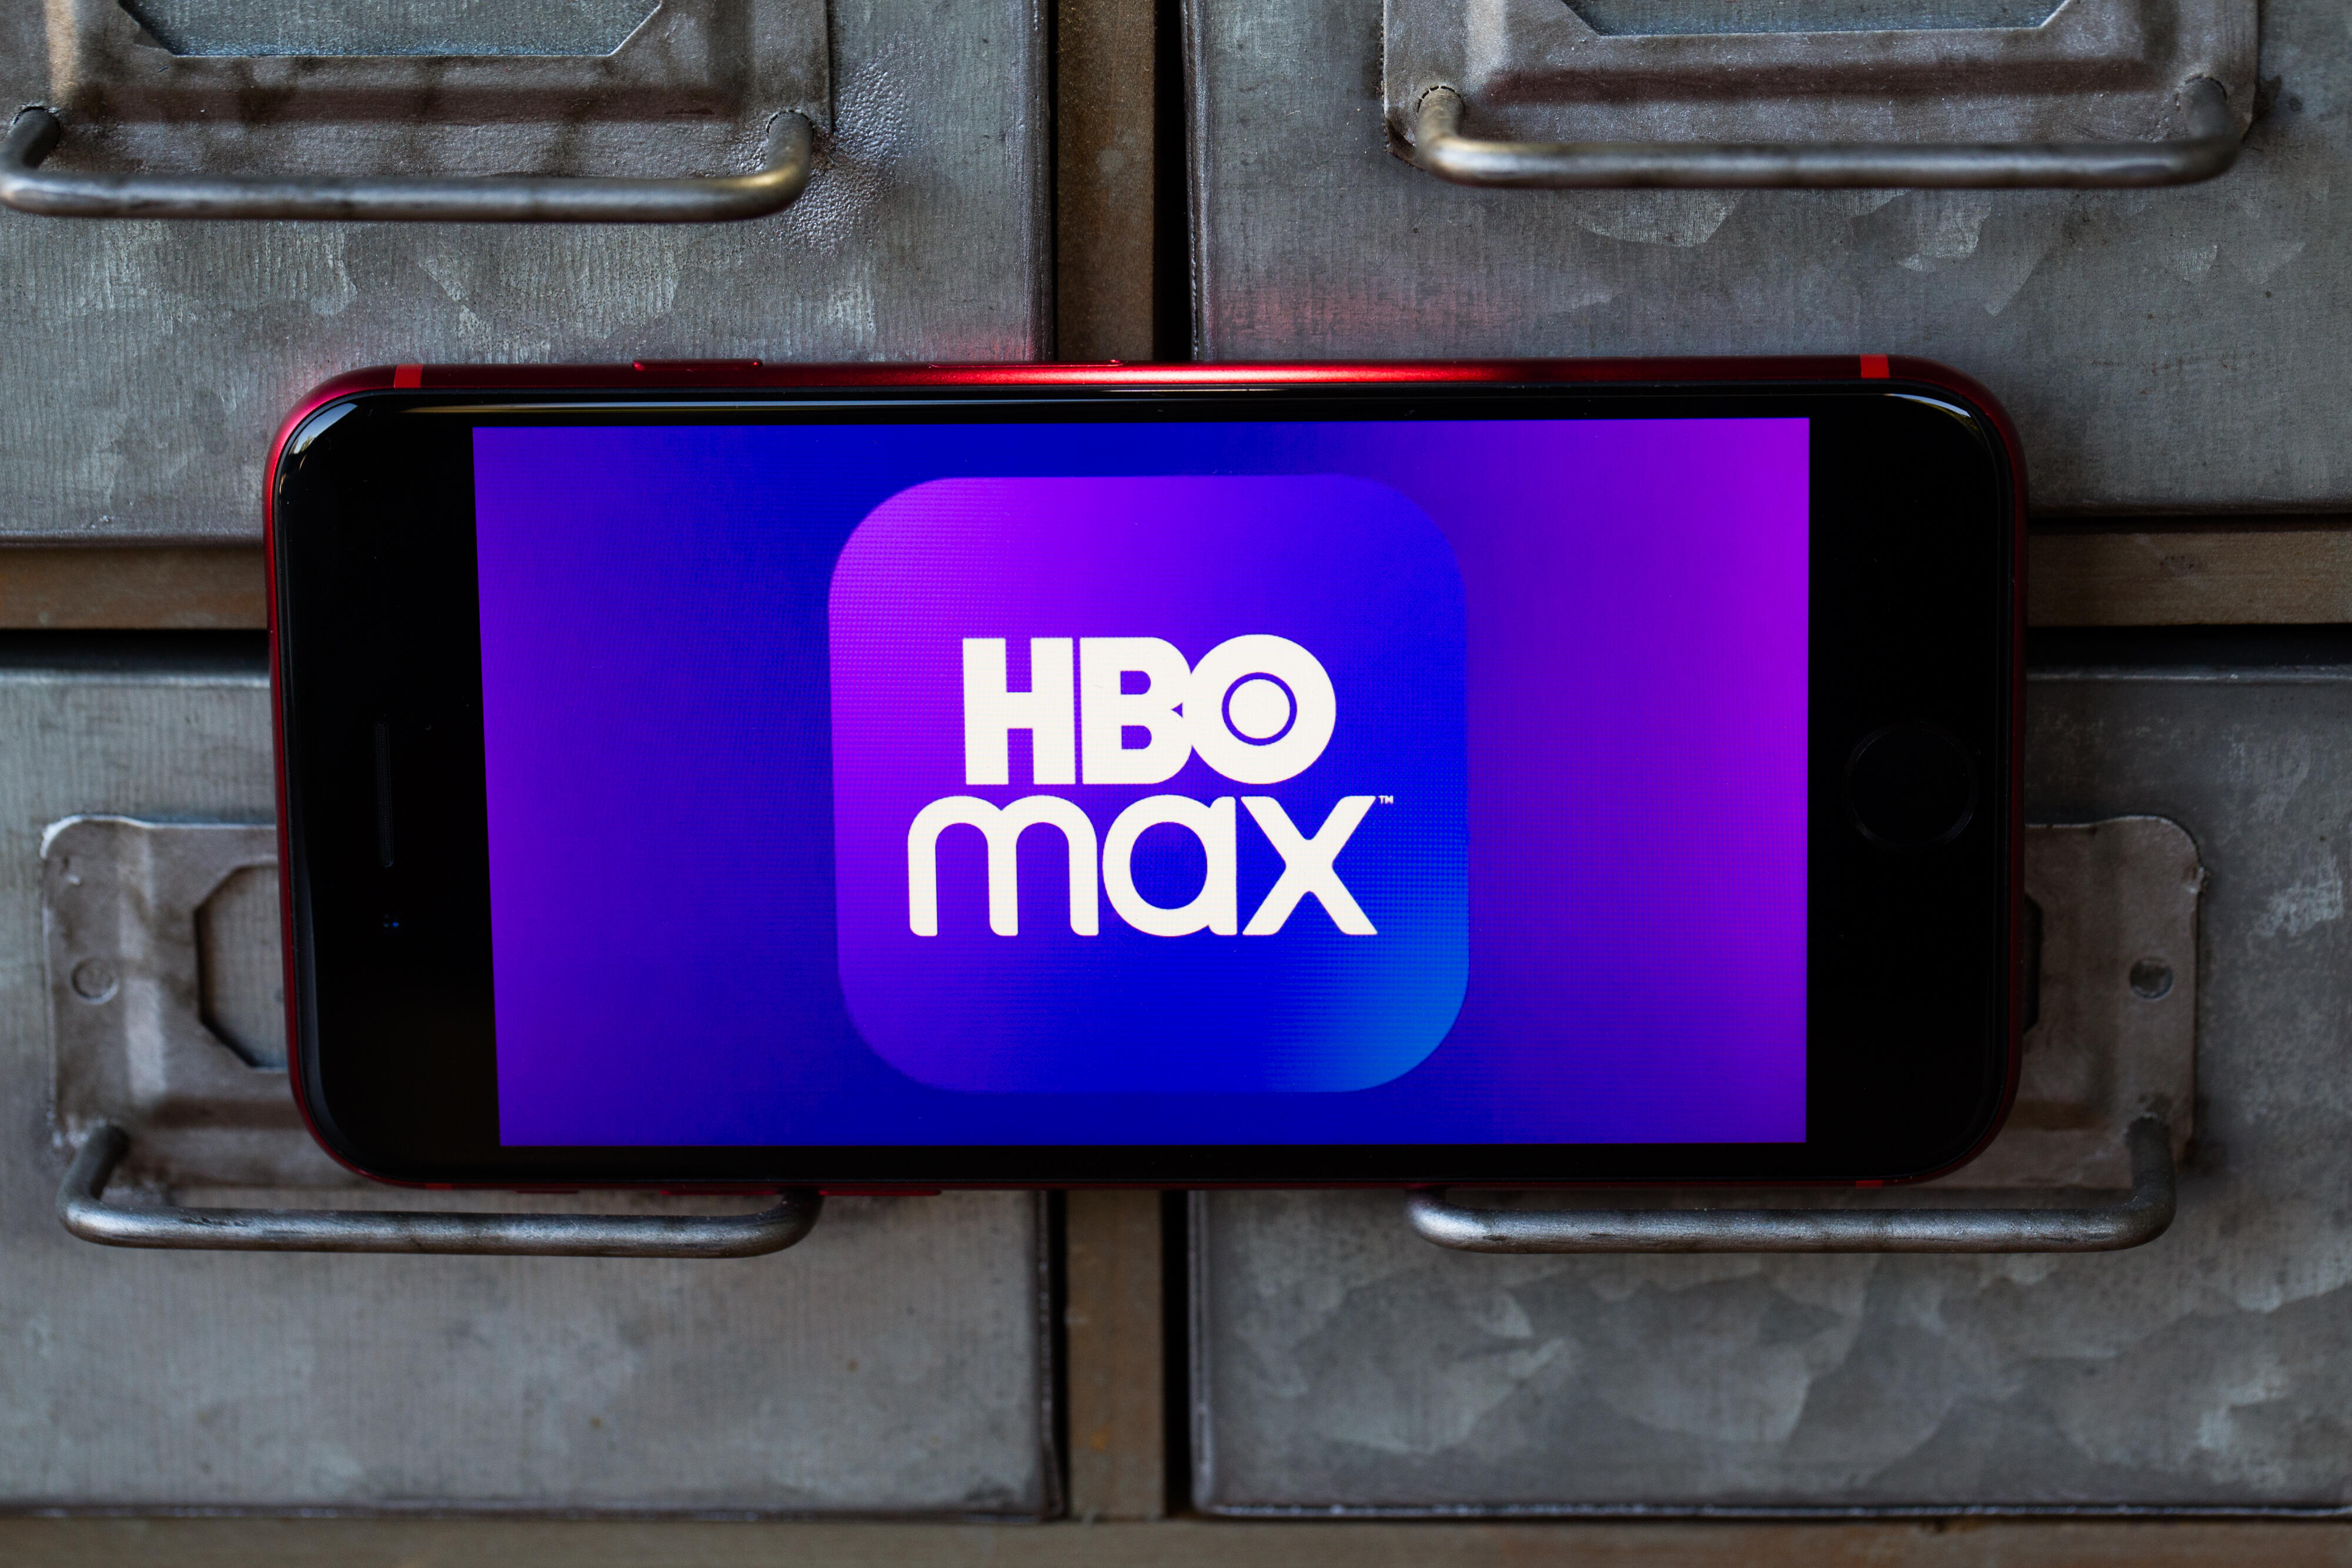 hbo-max-logo-phone-2773